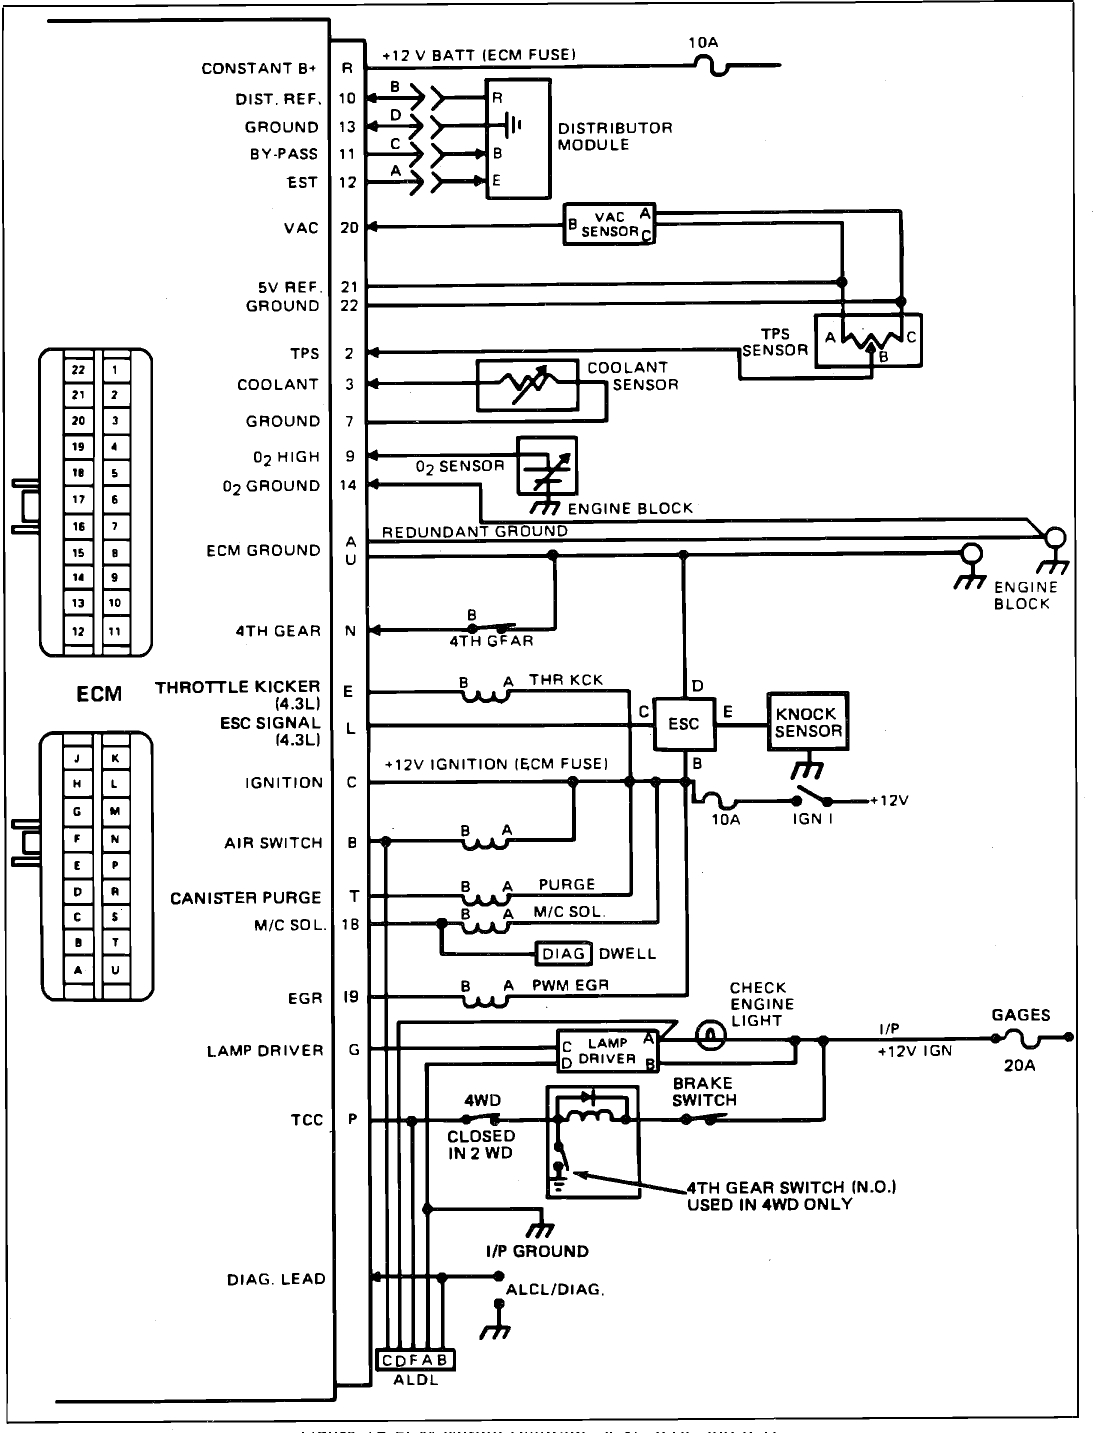 Chevy G20 Van Wiring Diagram - Wiring Source •